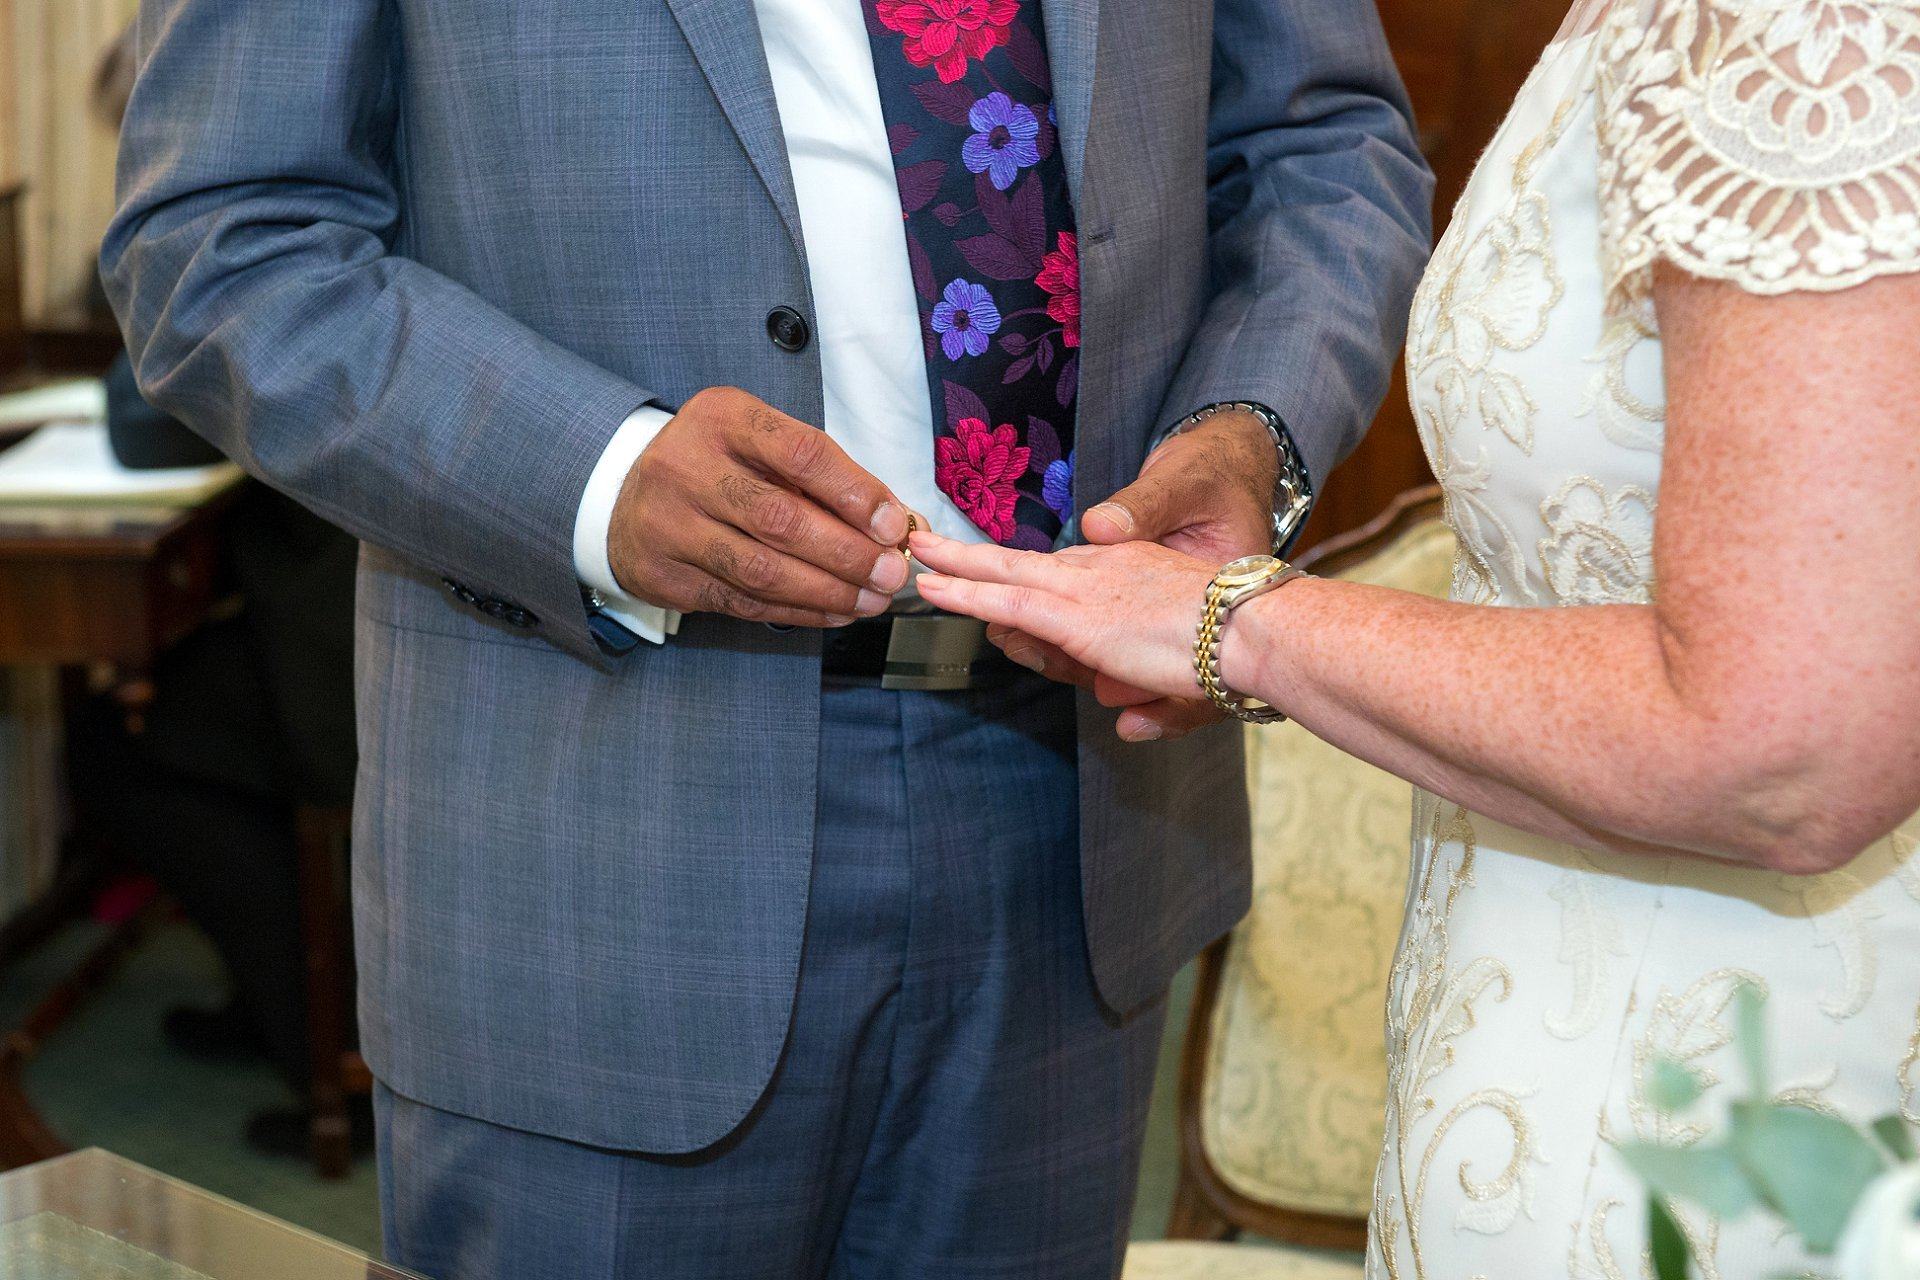 The groom places the wedding ring on his bride's finger during this Chelsea wedding ceremony